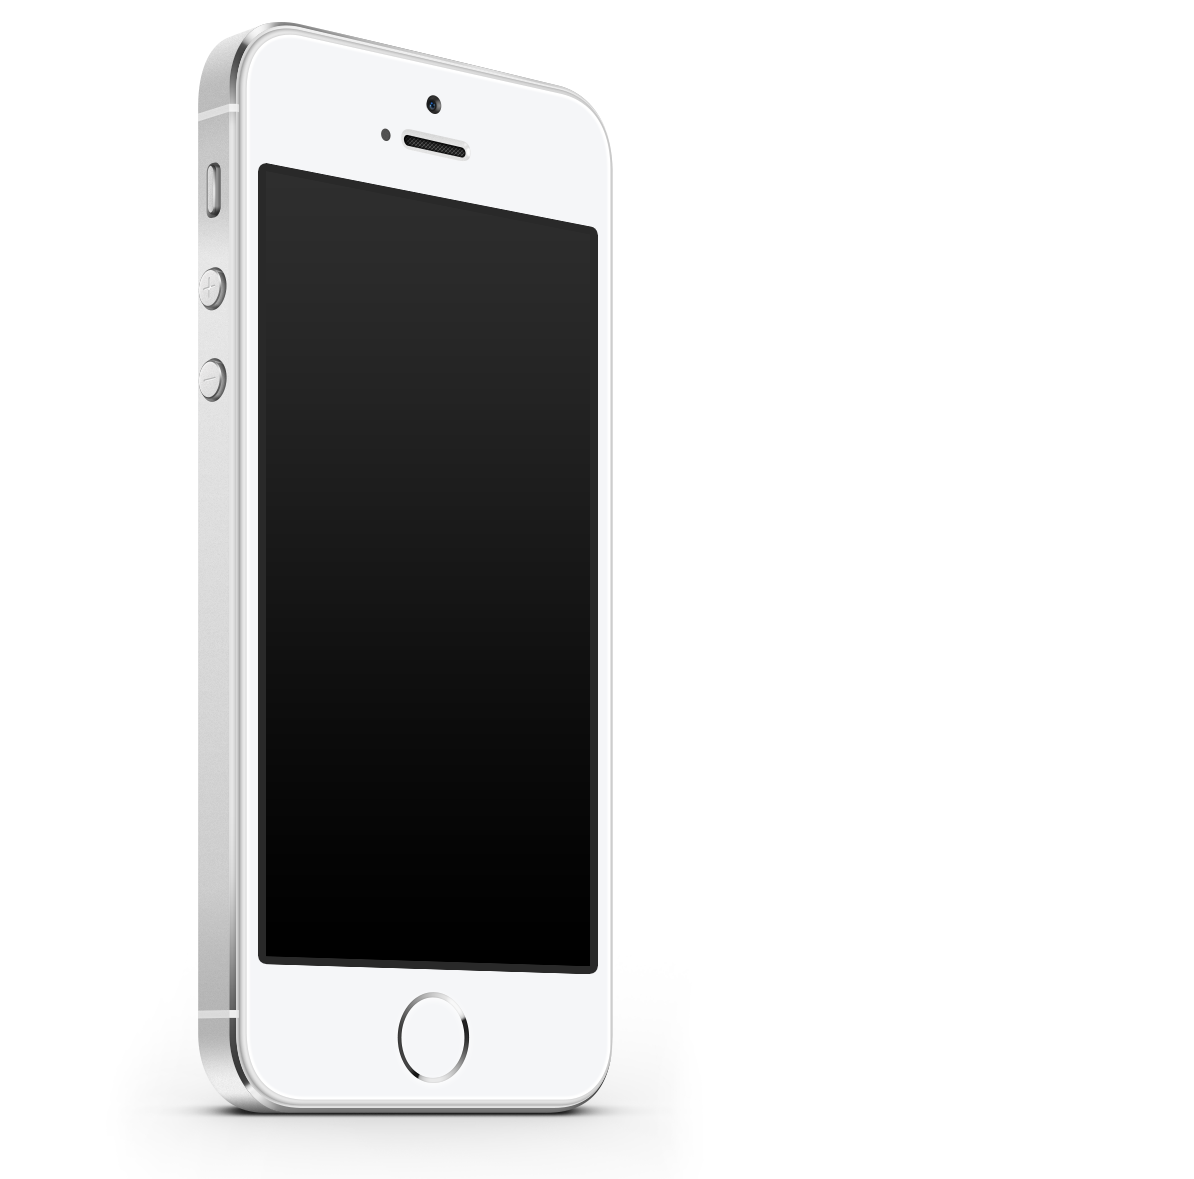 Iphone 5 white png. Apple air defense